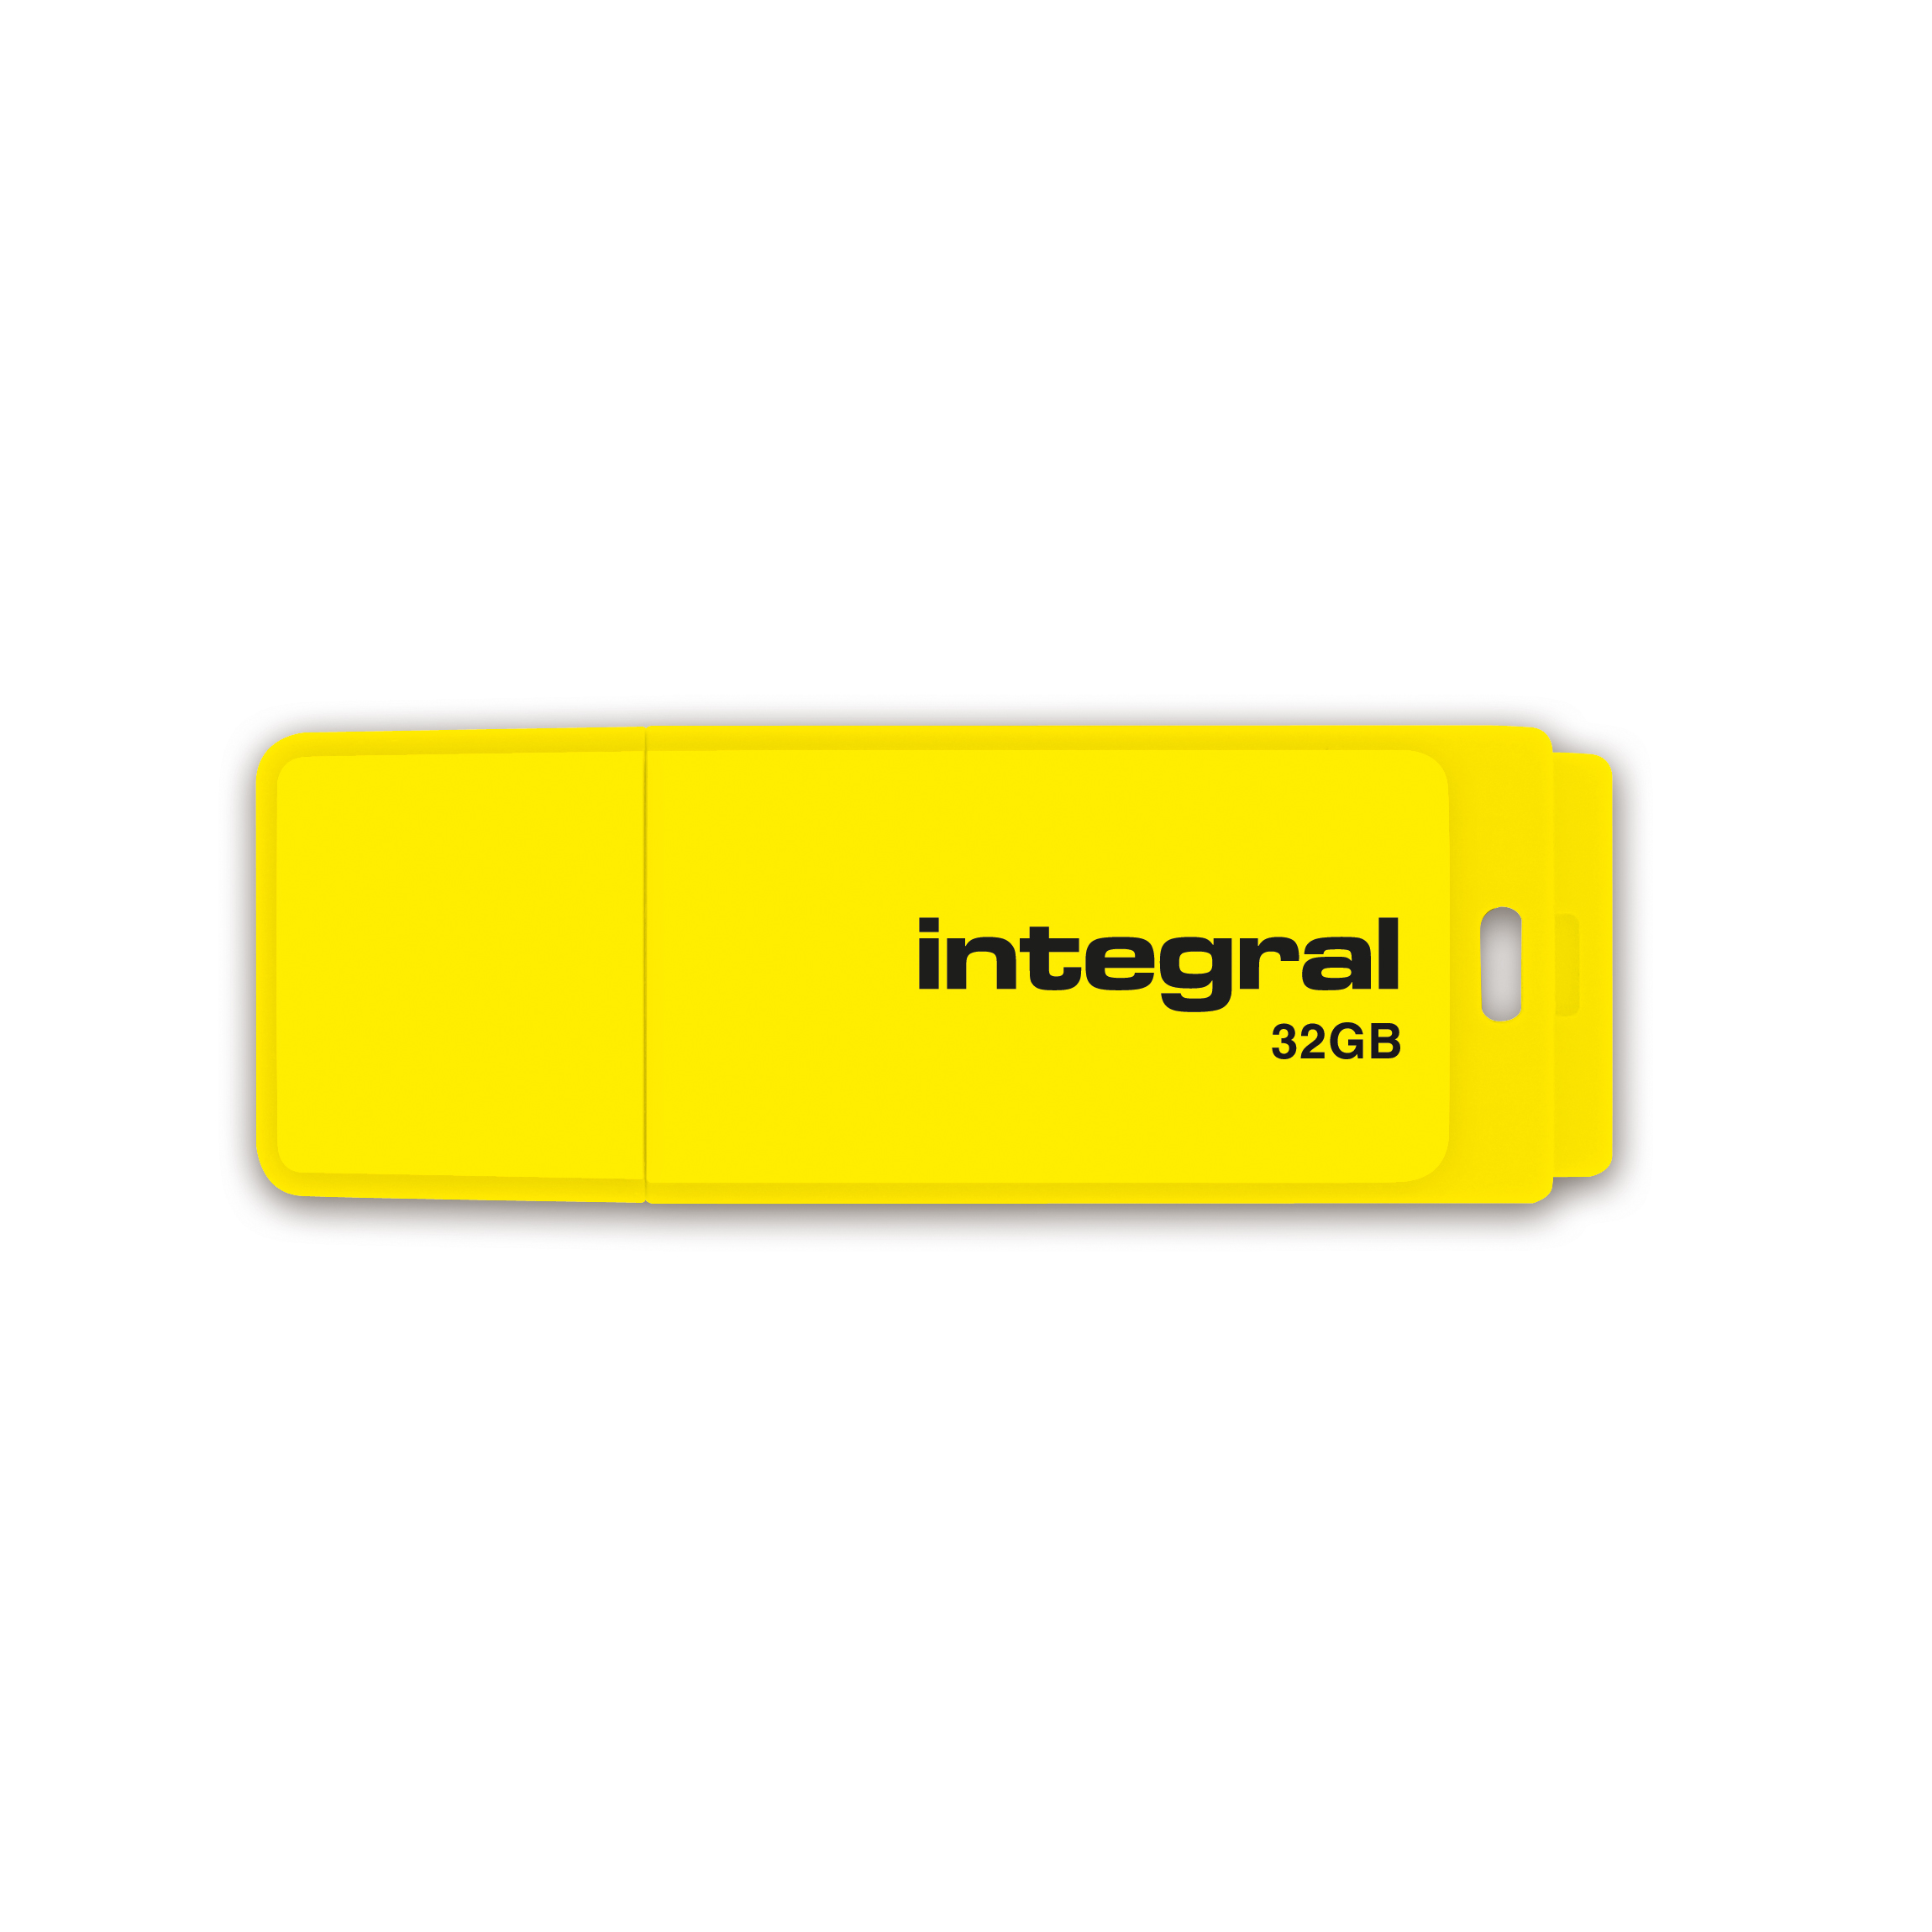 Pen or flash drive Integral Neon USB Drive 2.0 32GB Yellow Ref INFD32GBNEONYL